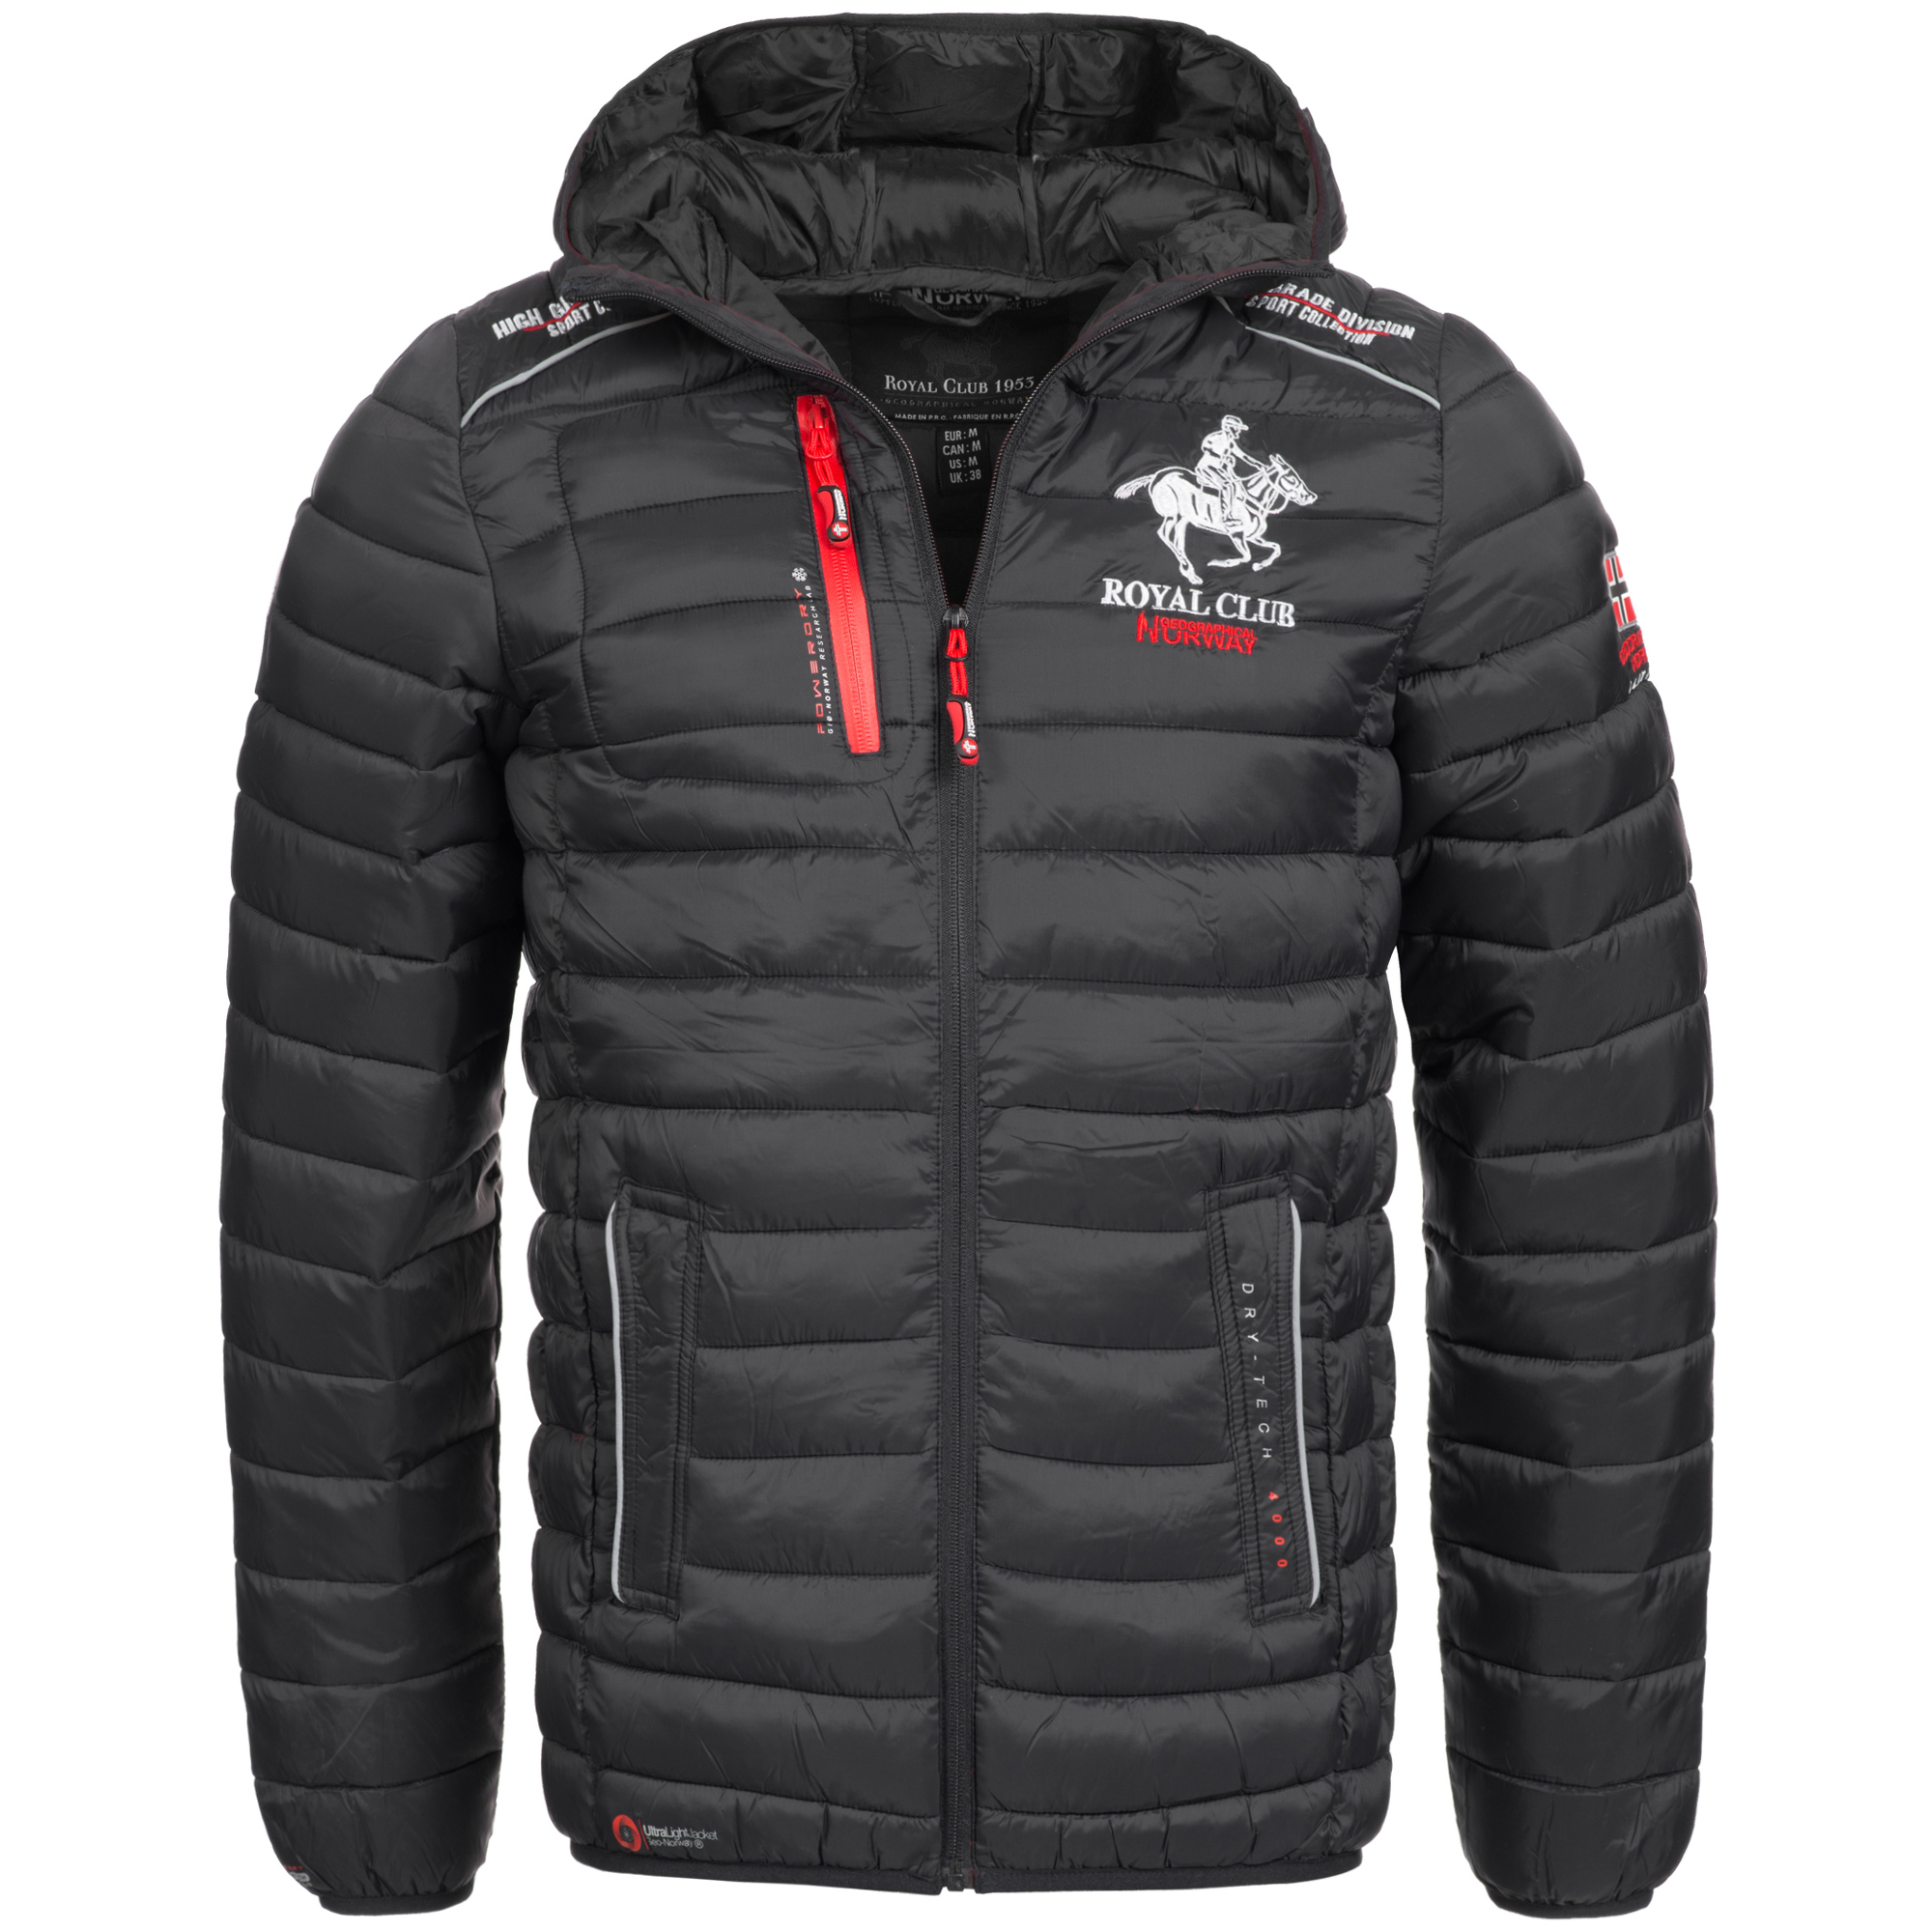 geographical norway jacke herren winterjacke steppjacke gesteppt warm brisbee ebay. Black Bedroom Furniture Sets. Home Design Ideas